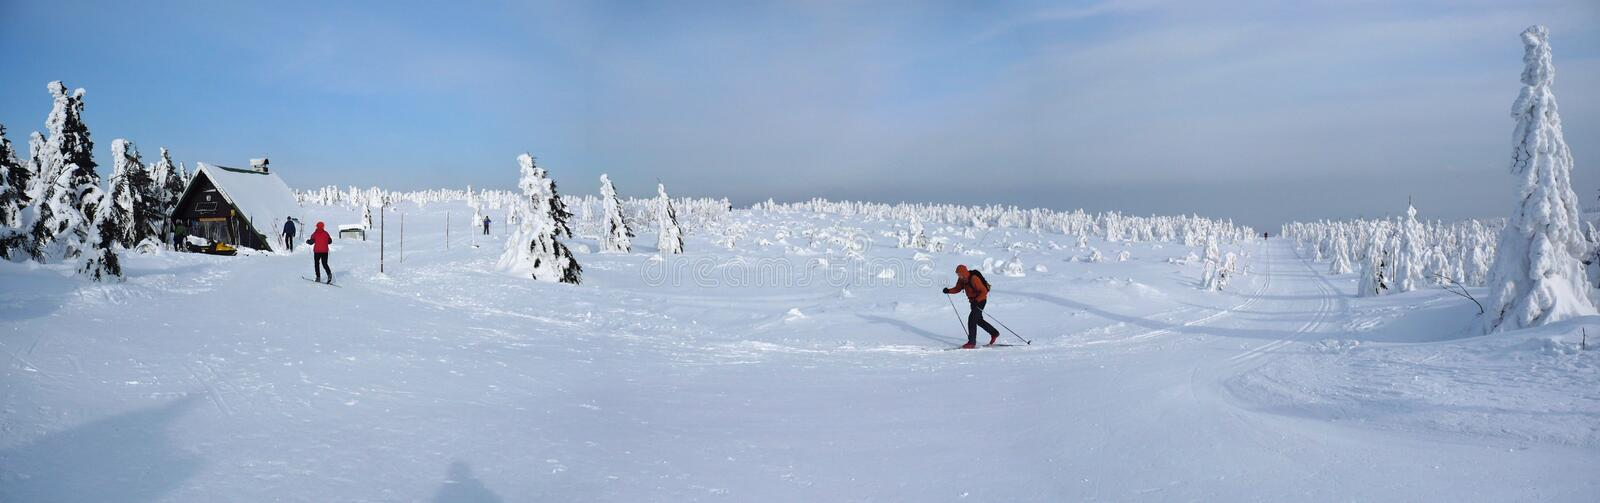 Download Cross-country skiing stock image. Image of blue, cross - 23923701